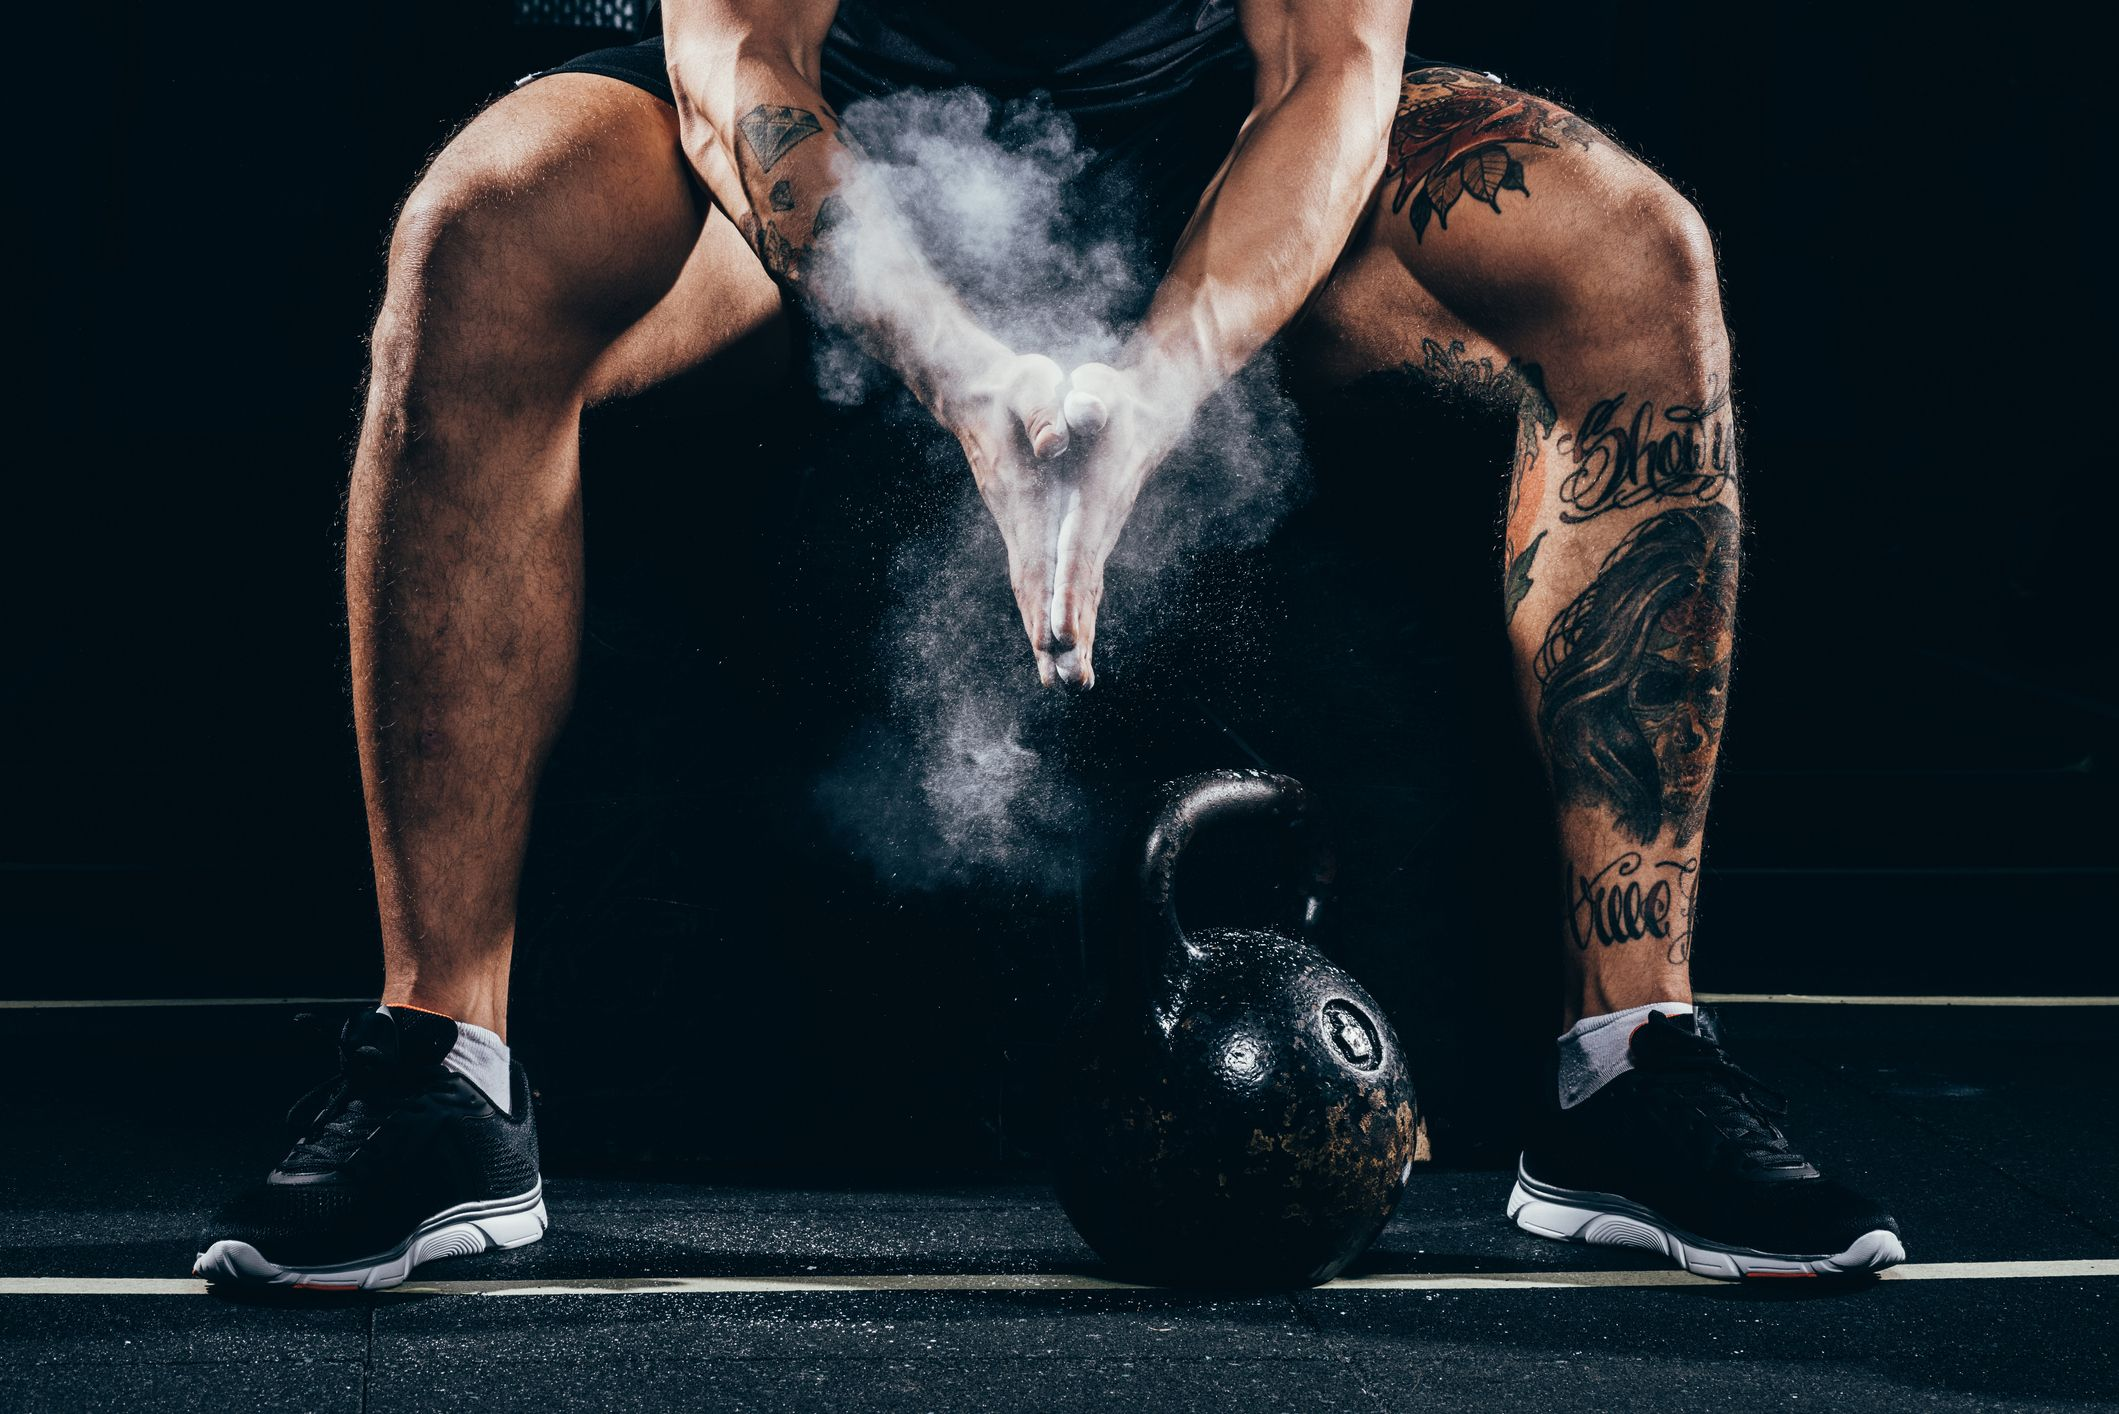 This 3-Part, Full-Body Workout Is Designed to Test Your Strength and Your Stamina